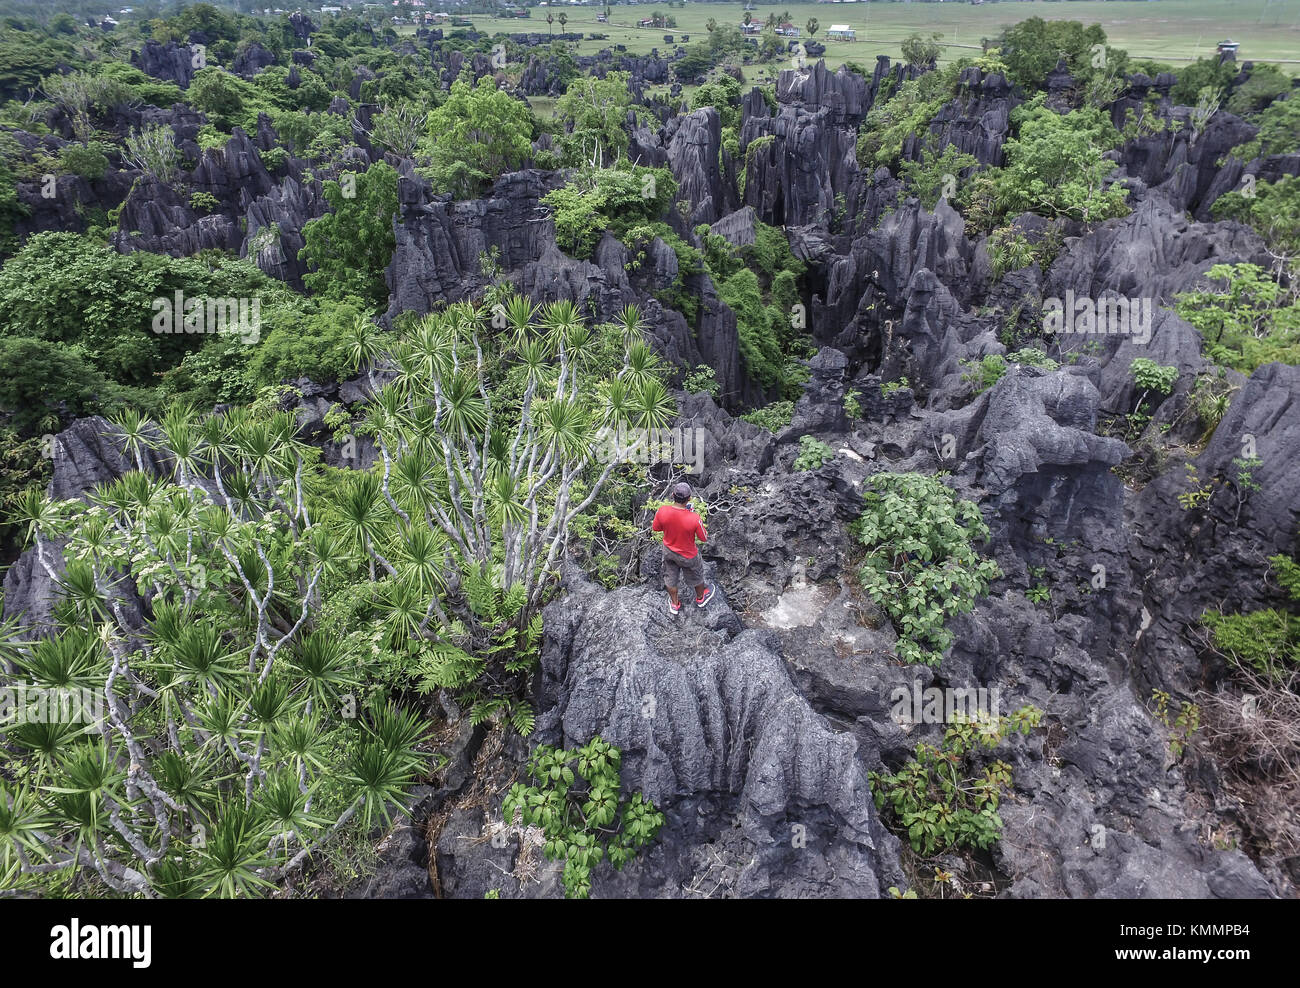 The forest of rock in Rammang-Rammang near Maros Makassar in South Sulawesi - Indonesia. - Stock Image